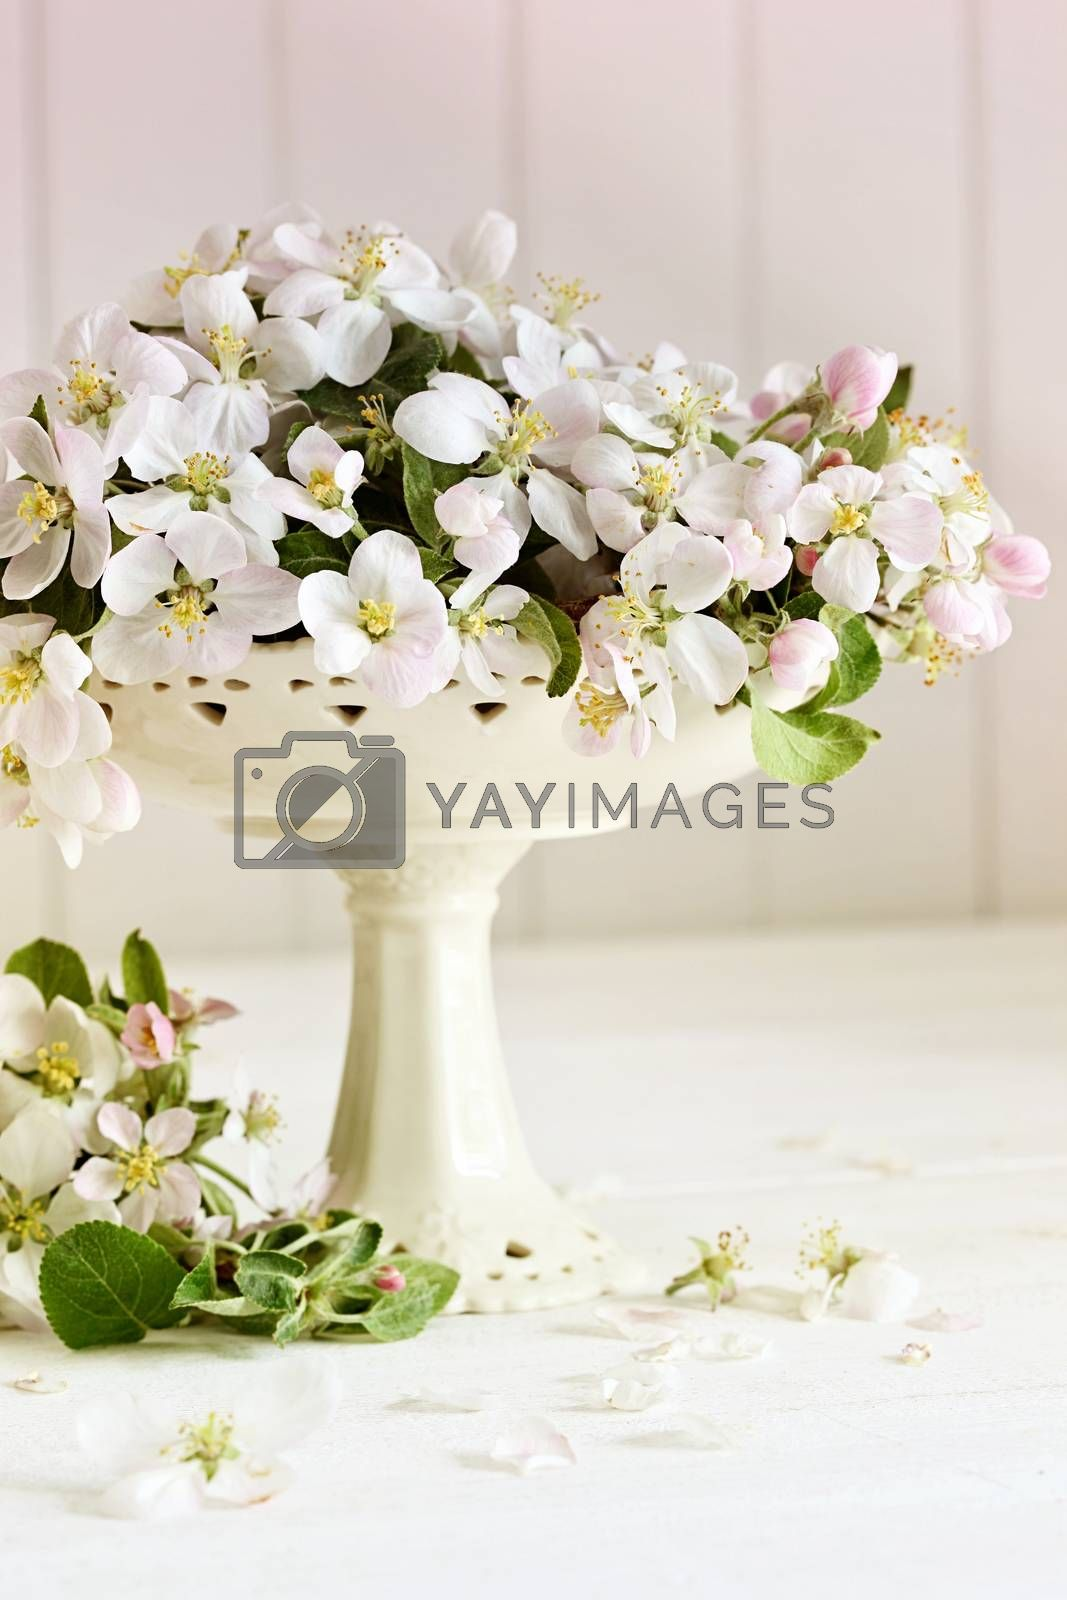 Fresh apple blossoms on white table